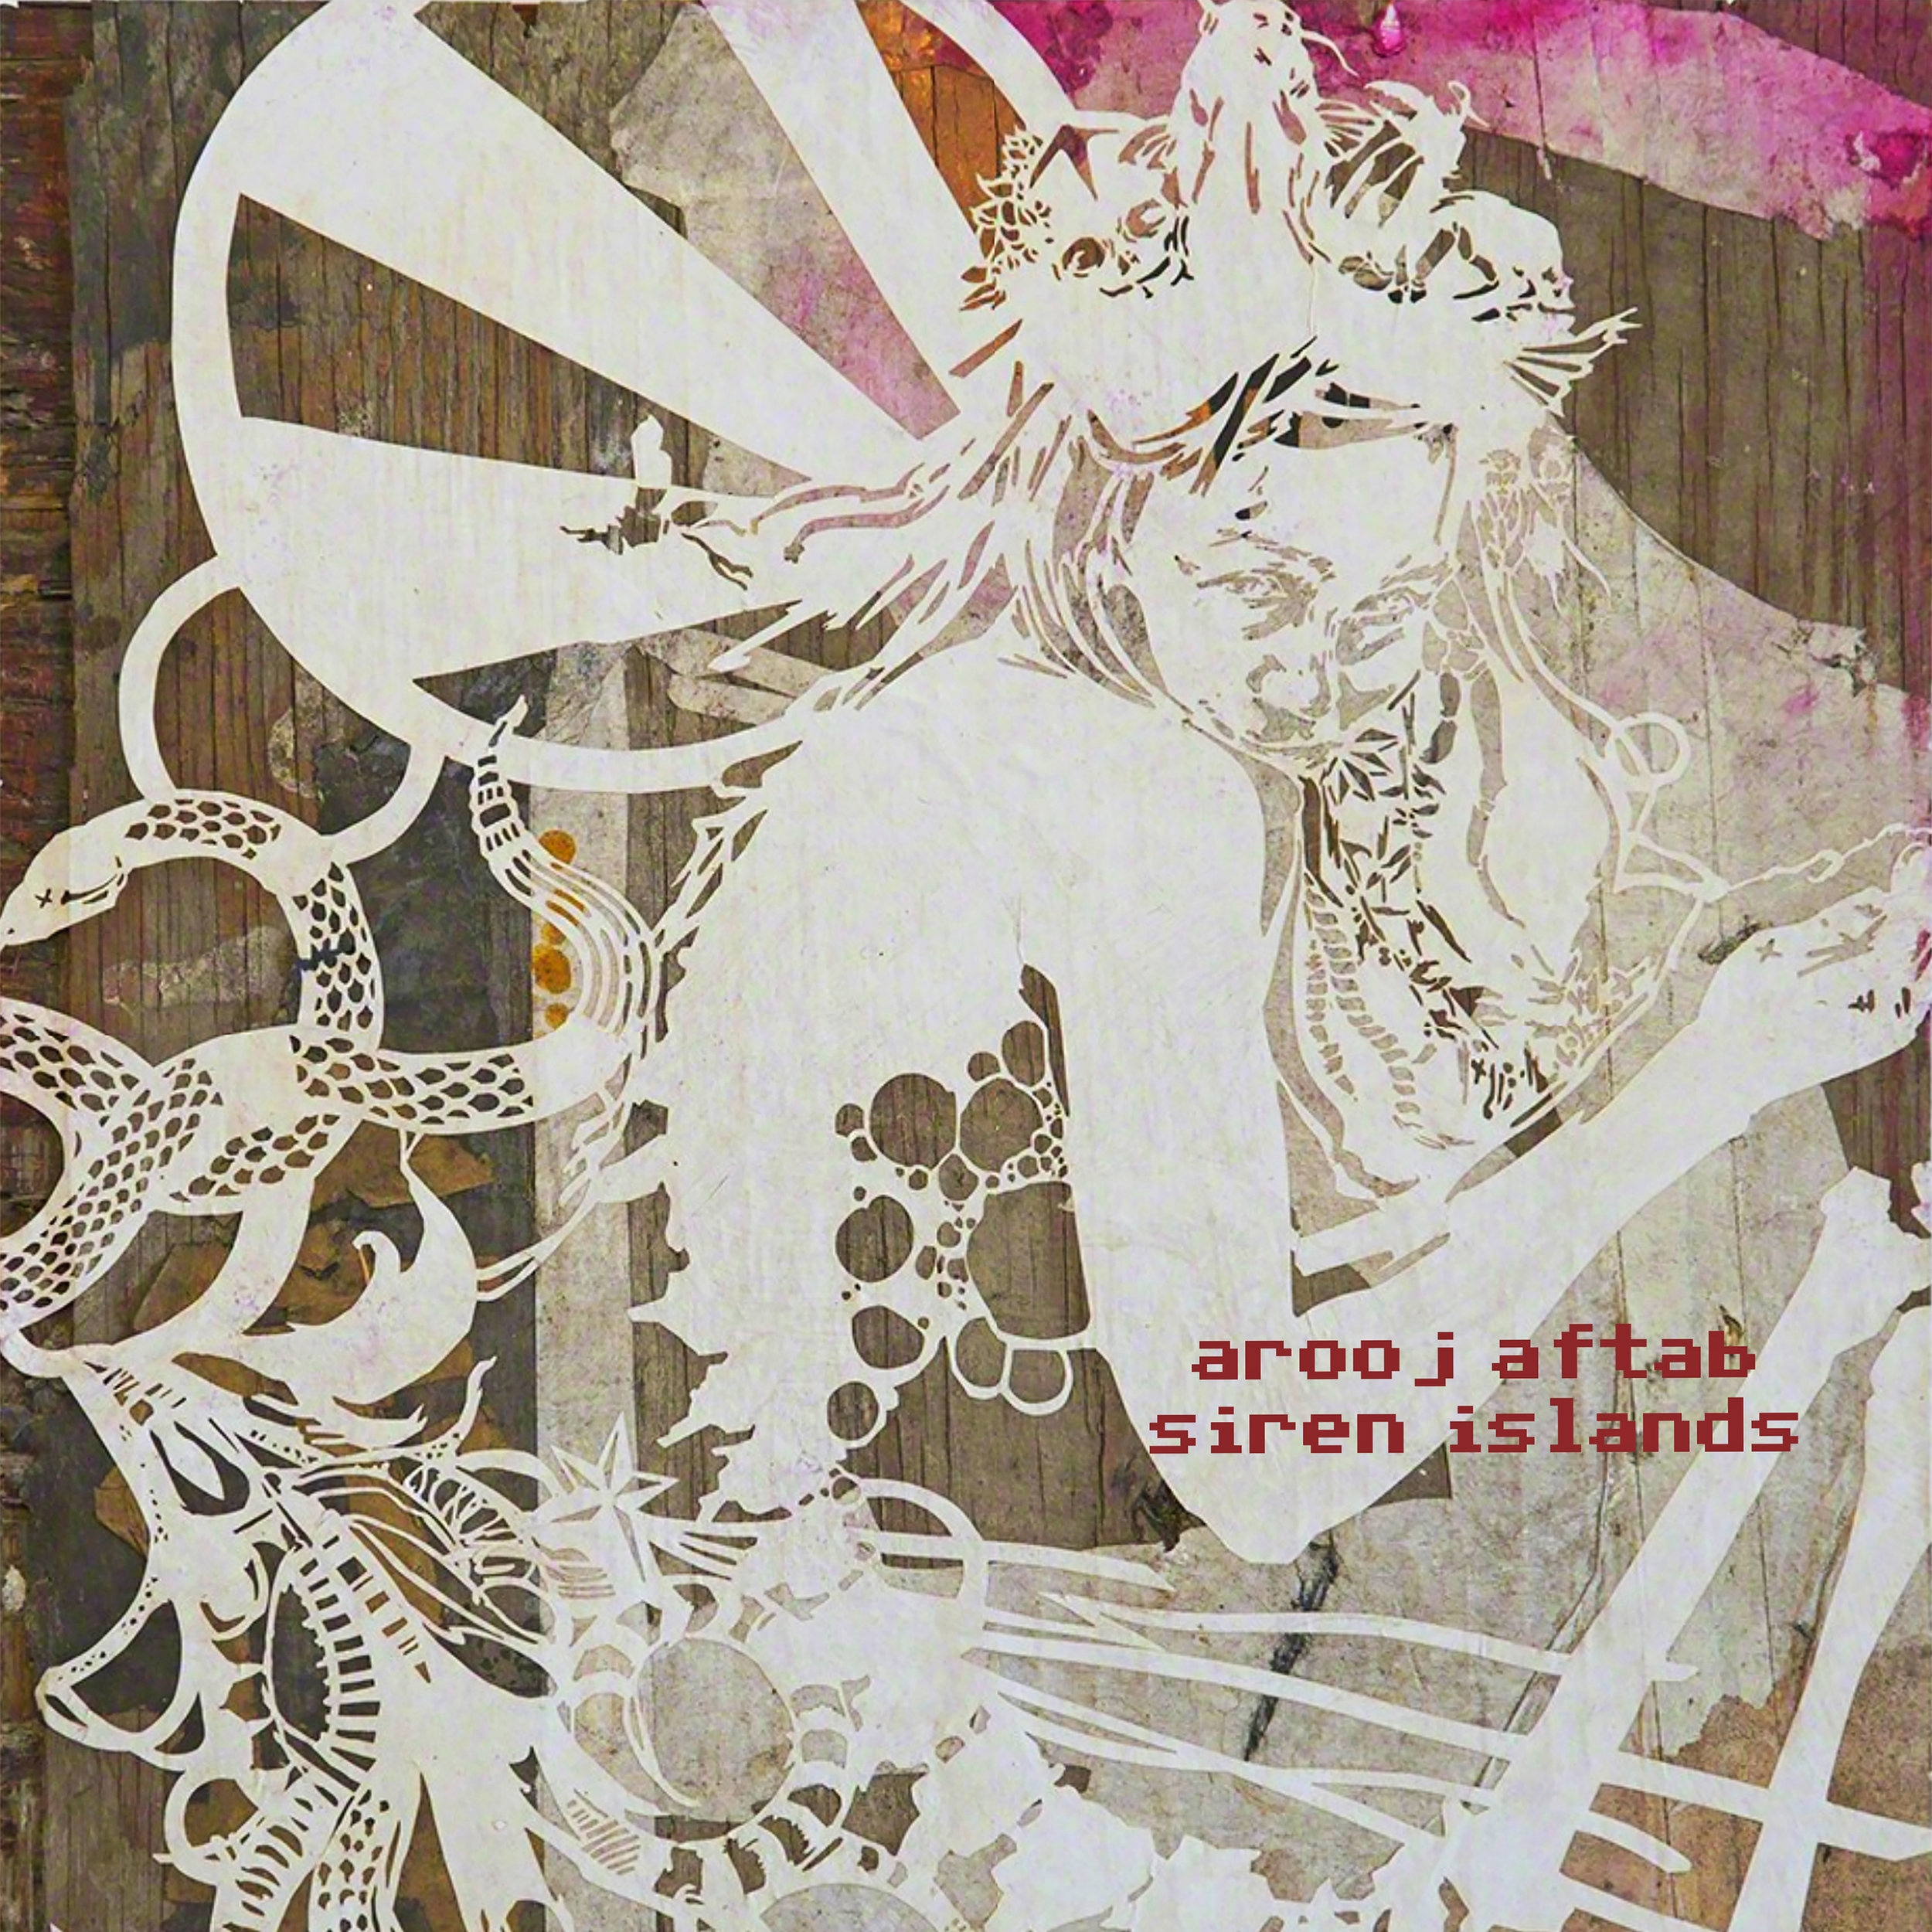 sirenislands_albumcover_final.jpg